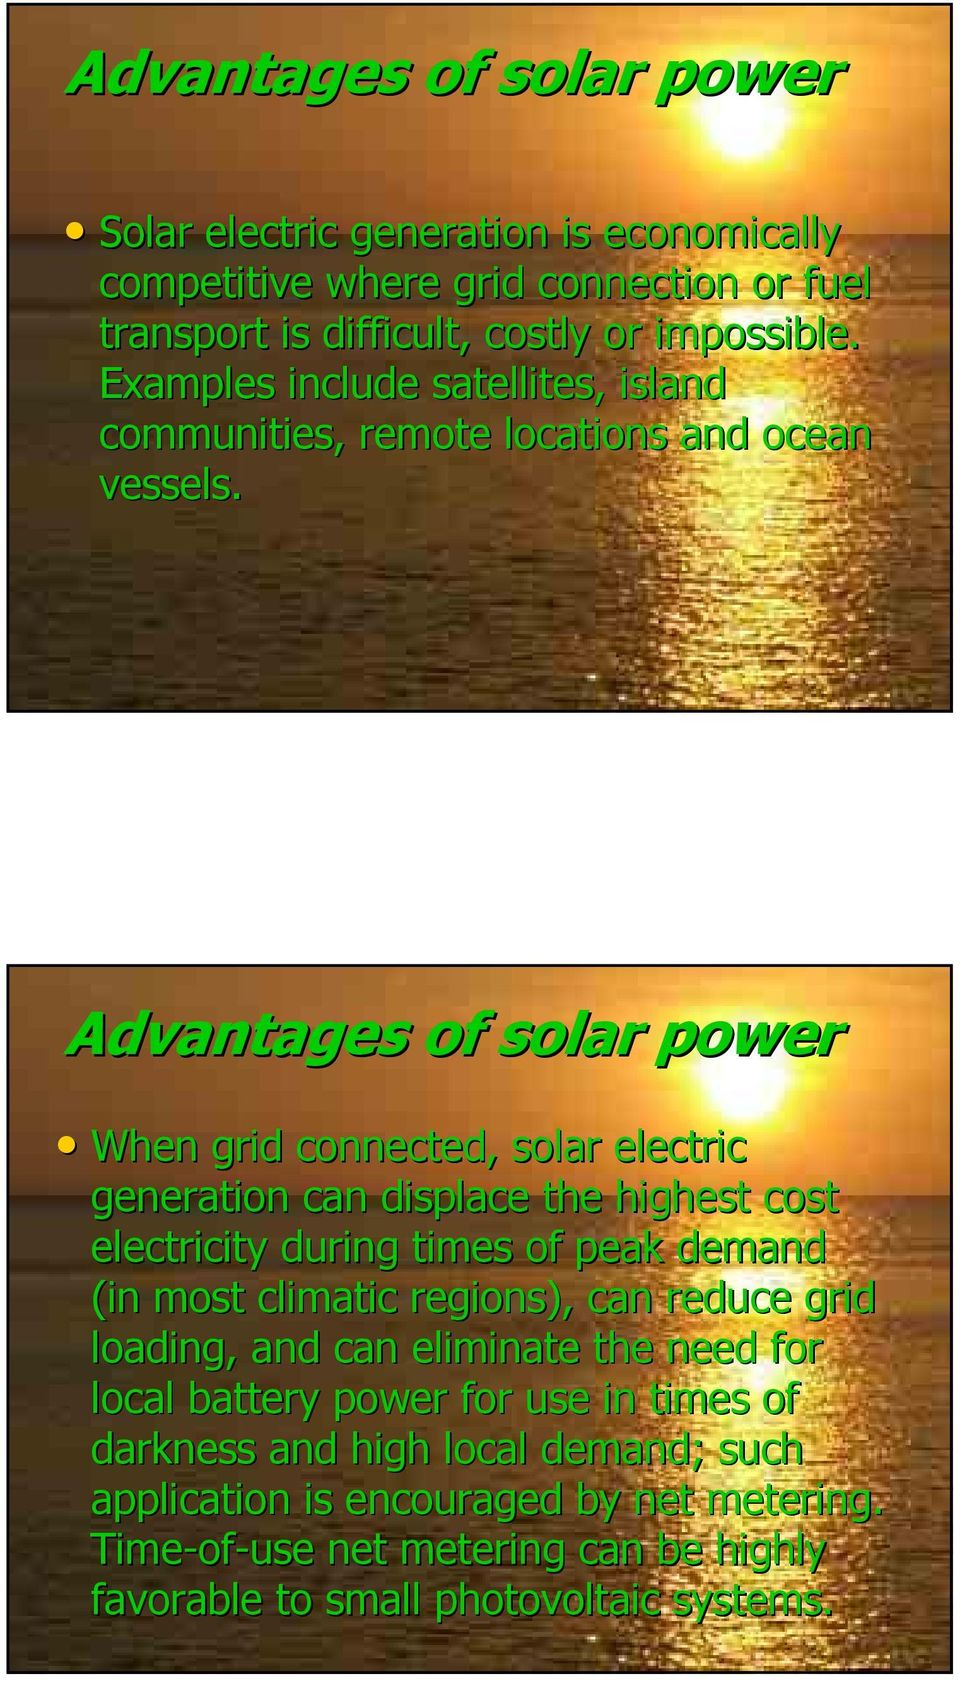 Advantages of solar power When grid connected, solar electric generation can displace the highest cost electricity during times of peak demand (in most climatic